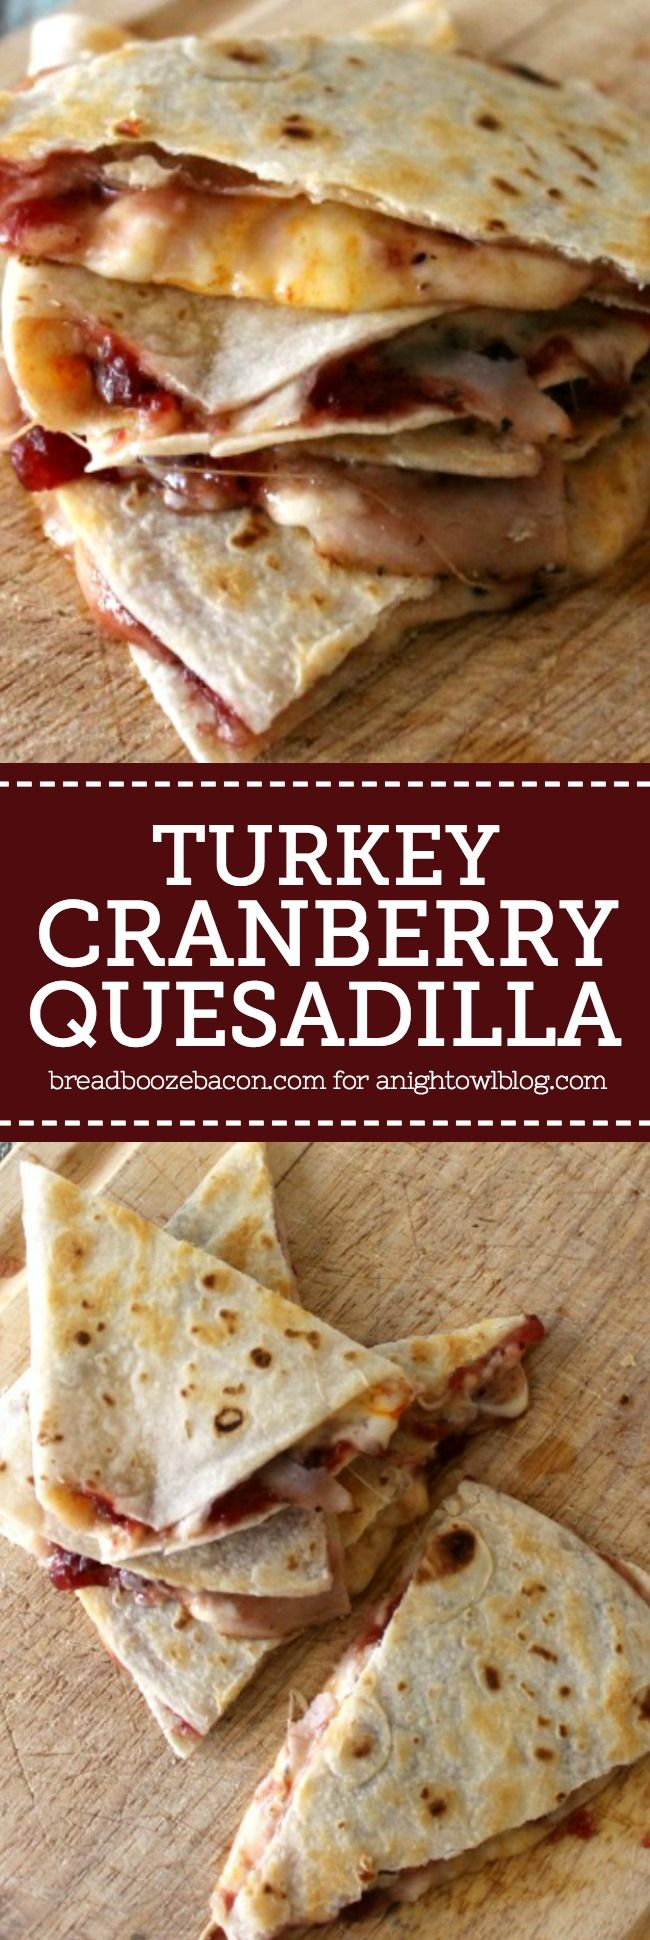 1000+ ideas about Pizza Quesadilla on Pinterest | Quesadilla Recipes ...